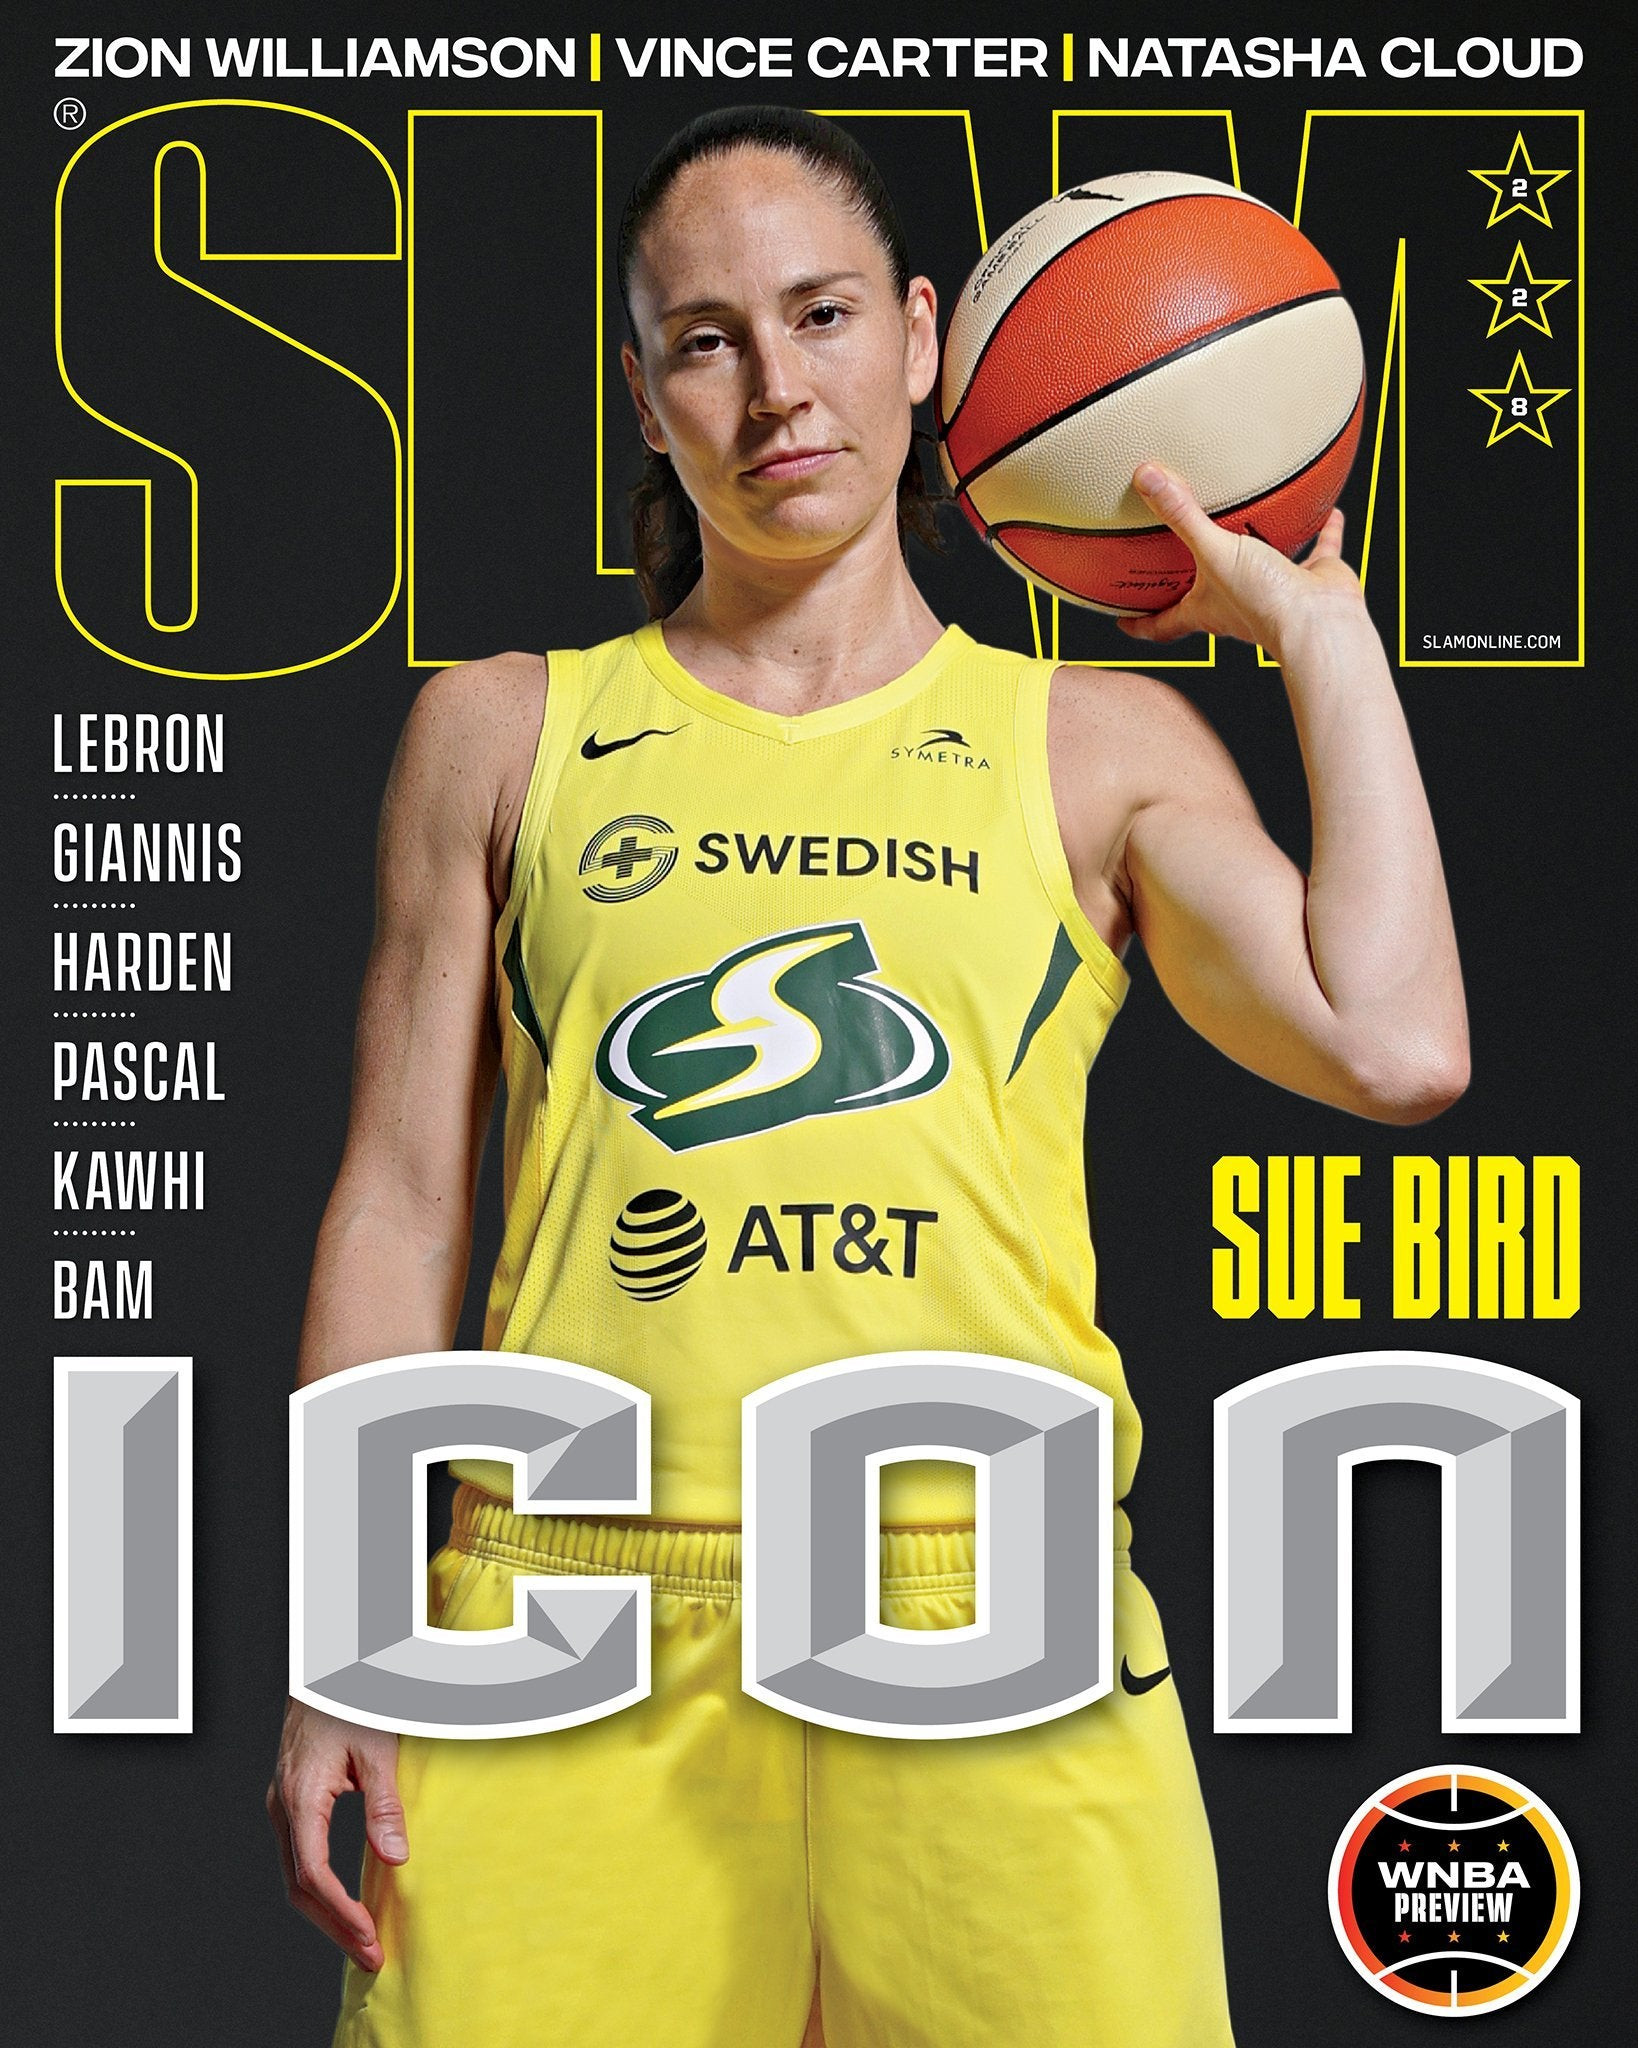 SLAM September/October 2020 (Sue Bird-228) - SLAM